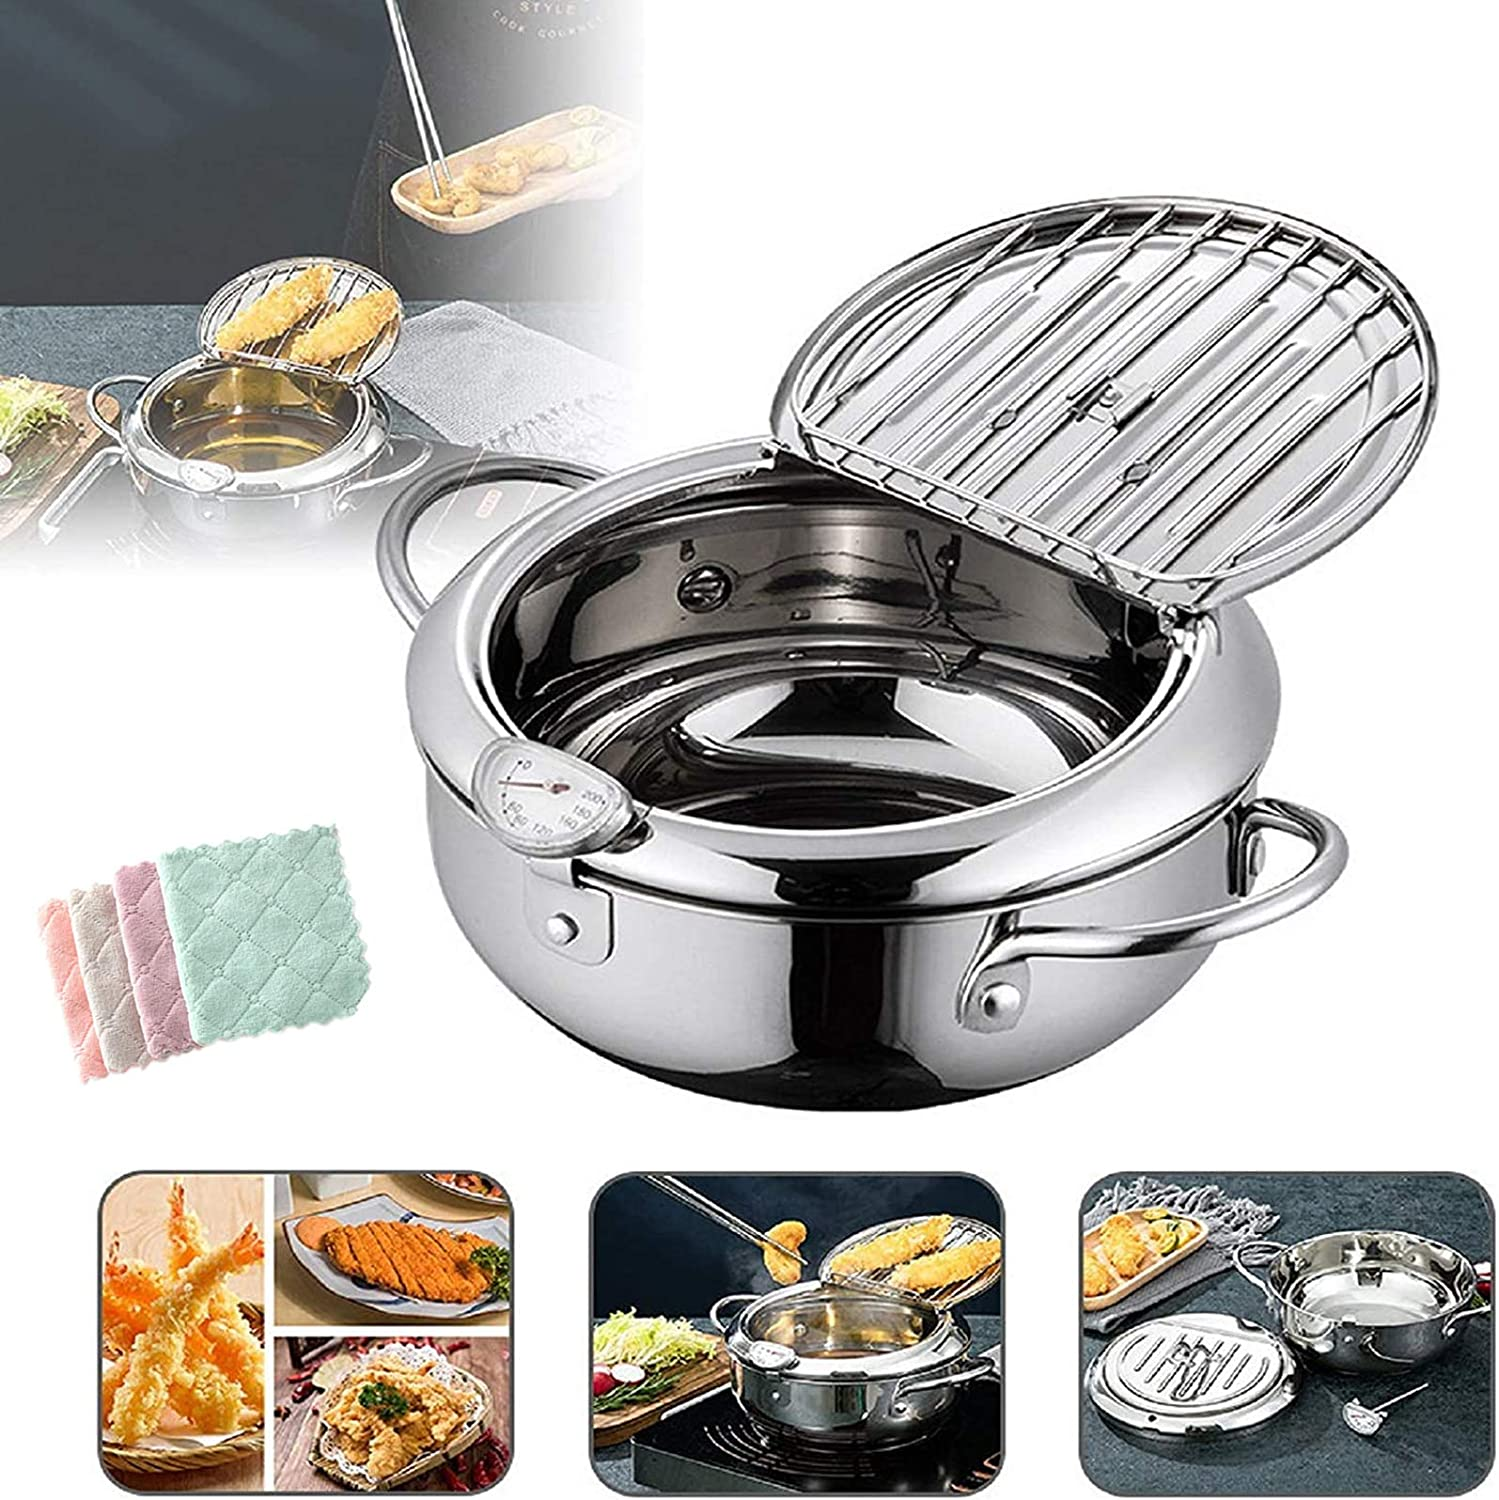 Deep Frying Pan,Japanese Style Tempura Fryer Pot,Mini Deep Fry Pan with Drainer,Non-stick coating Frying Pan with Thermometer,Lid And Oil Drip Drainer Rack for Kitchen Cooking 20cm/304